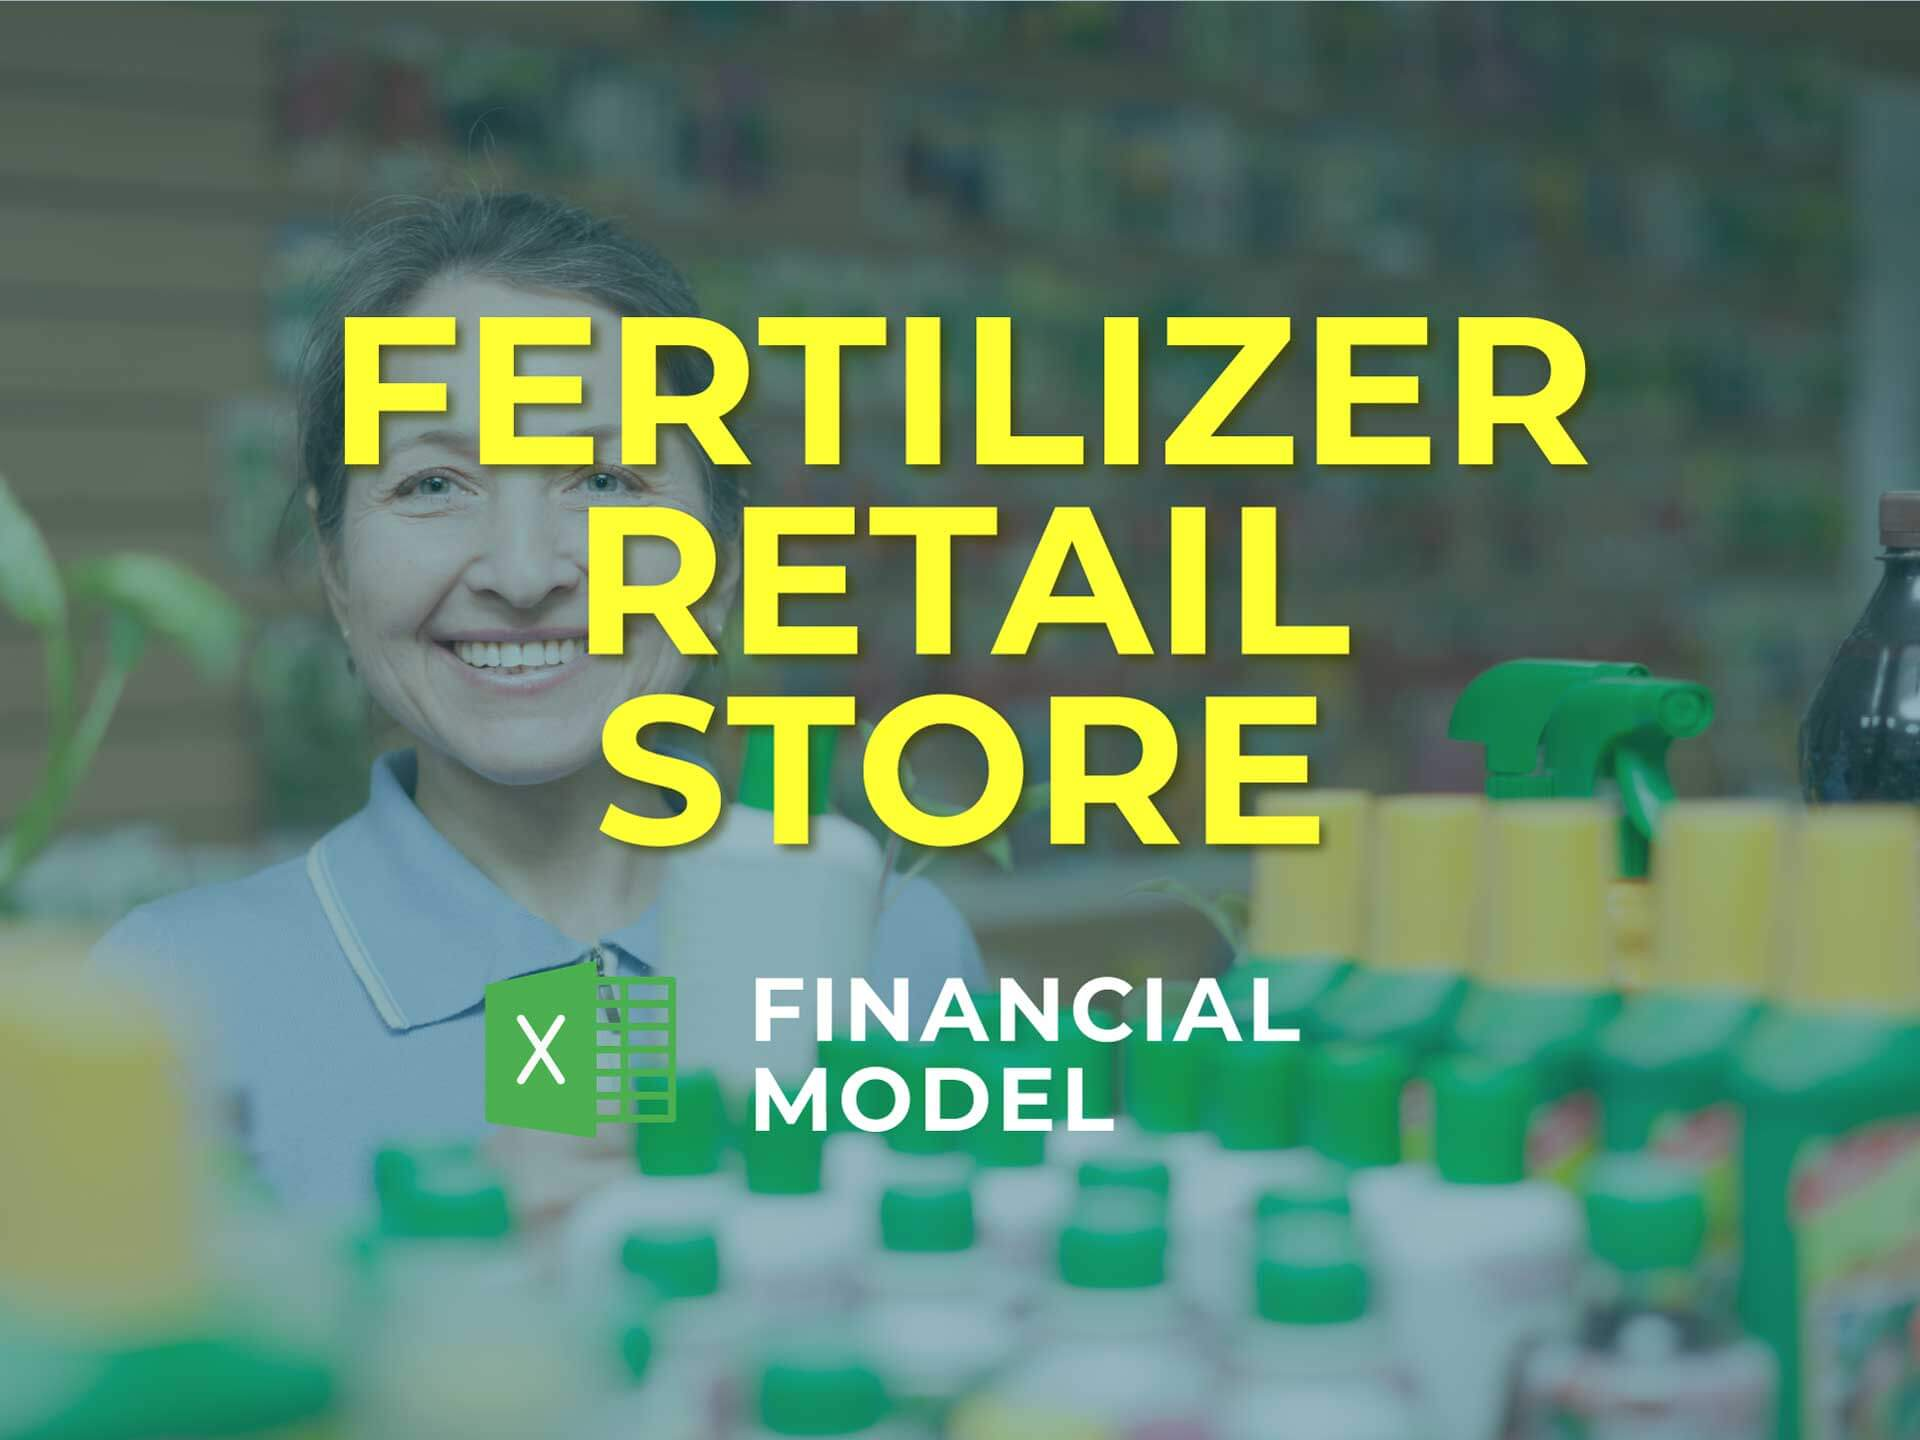 Fertilizer Retail Store